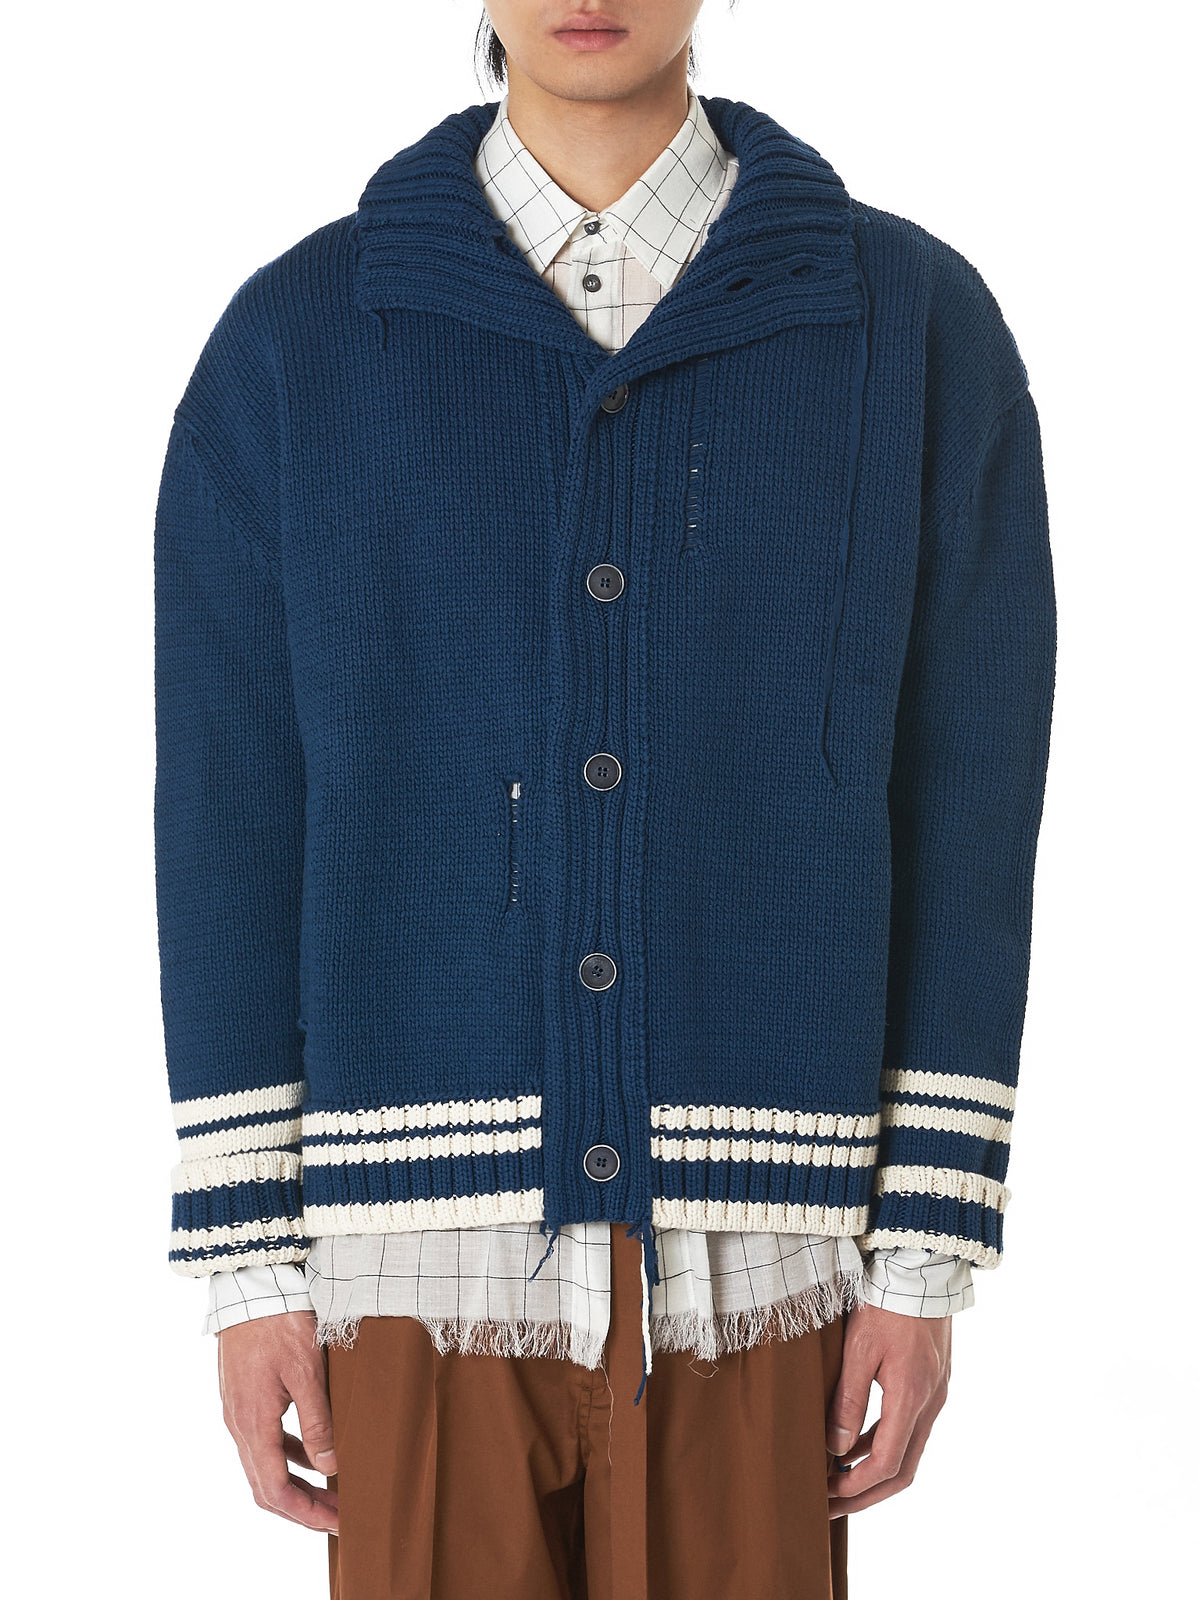 Federico Curradi Sweater - Hlorenzo Front